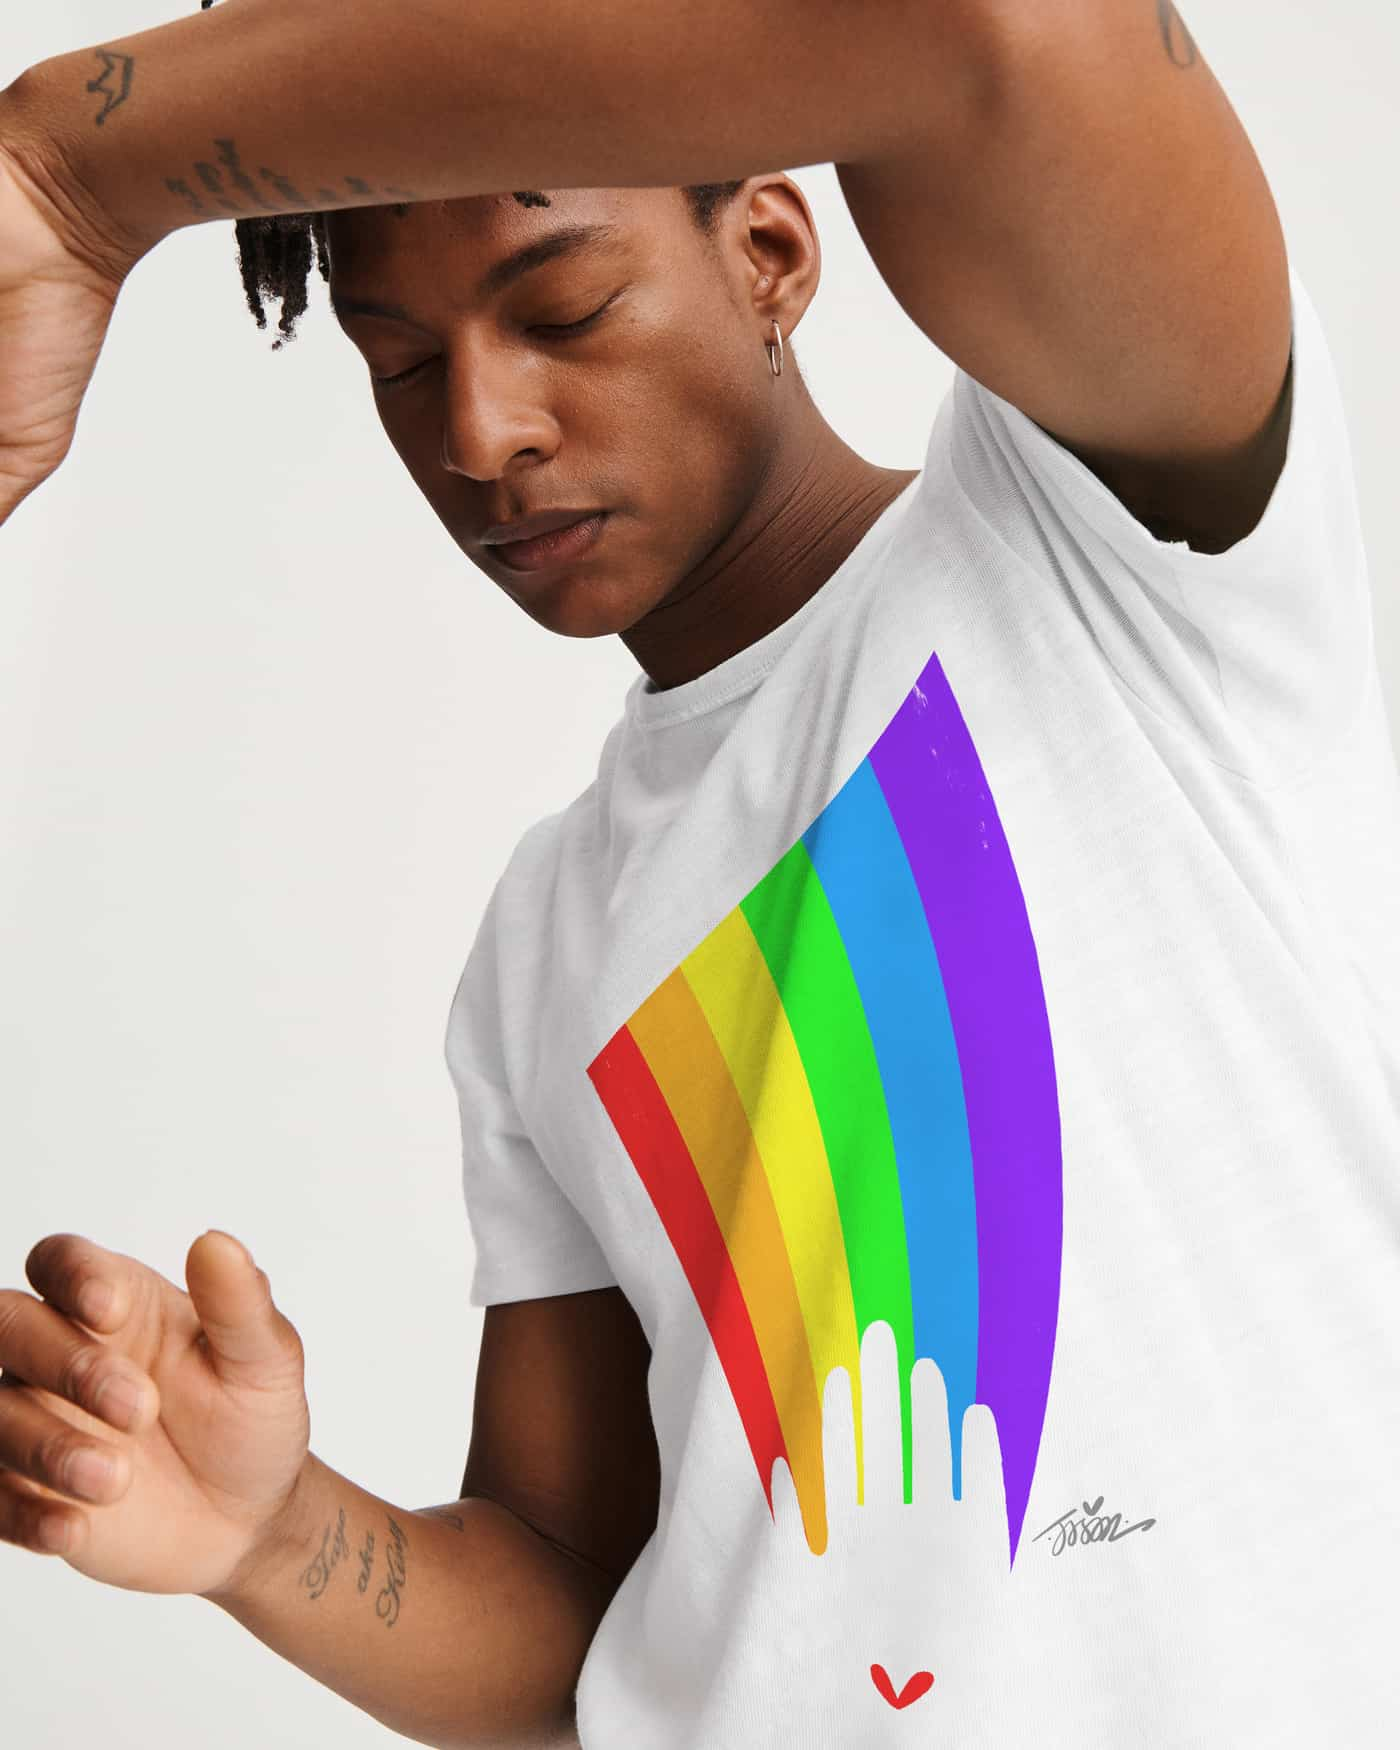 b9f0d4d7f89aa From May 26 to July 6 2019, Gap will donate 15% of sales from the PRIDE  collection to the United Nations Foundation in support of UN Free & Equal.